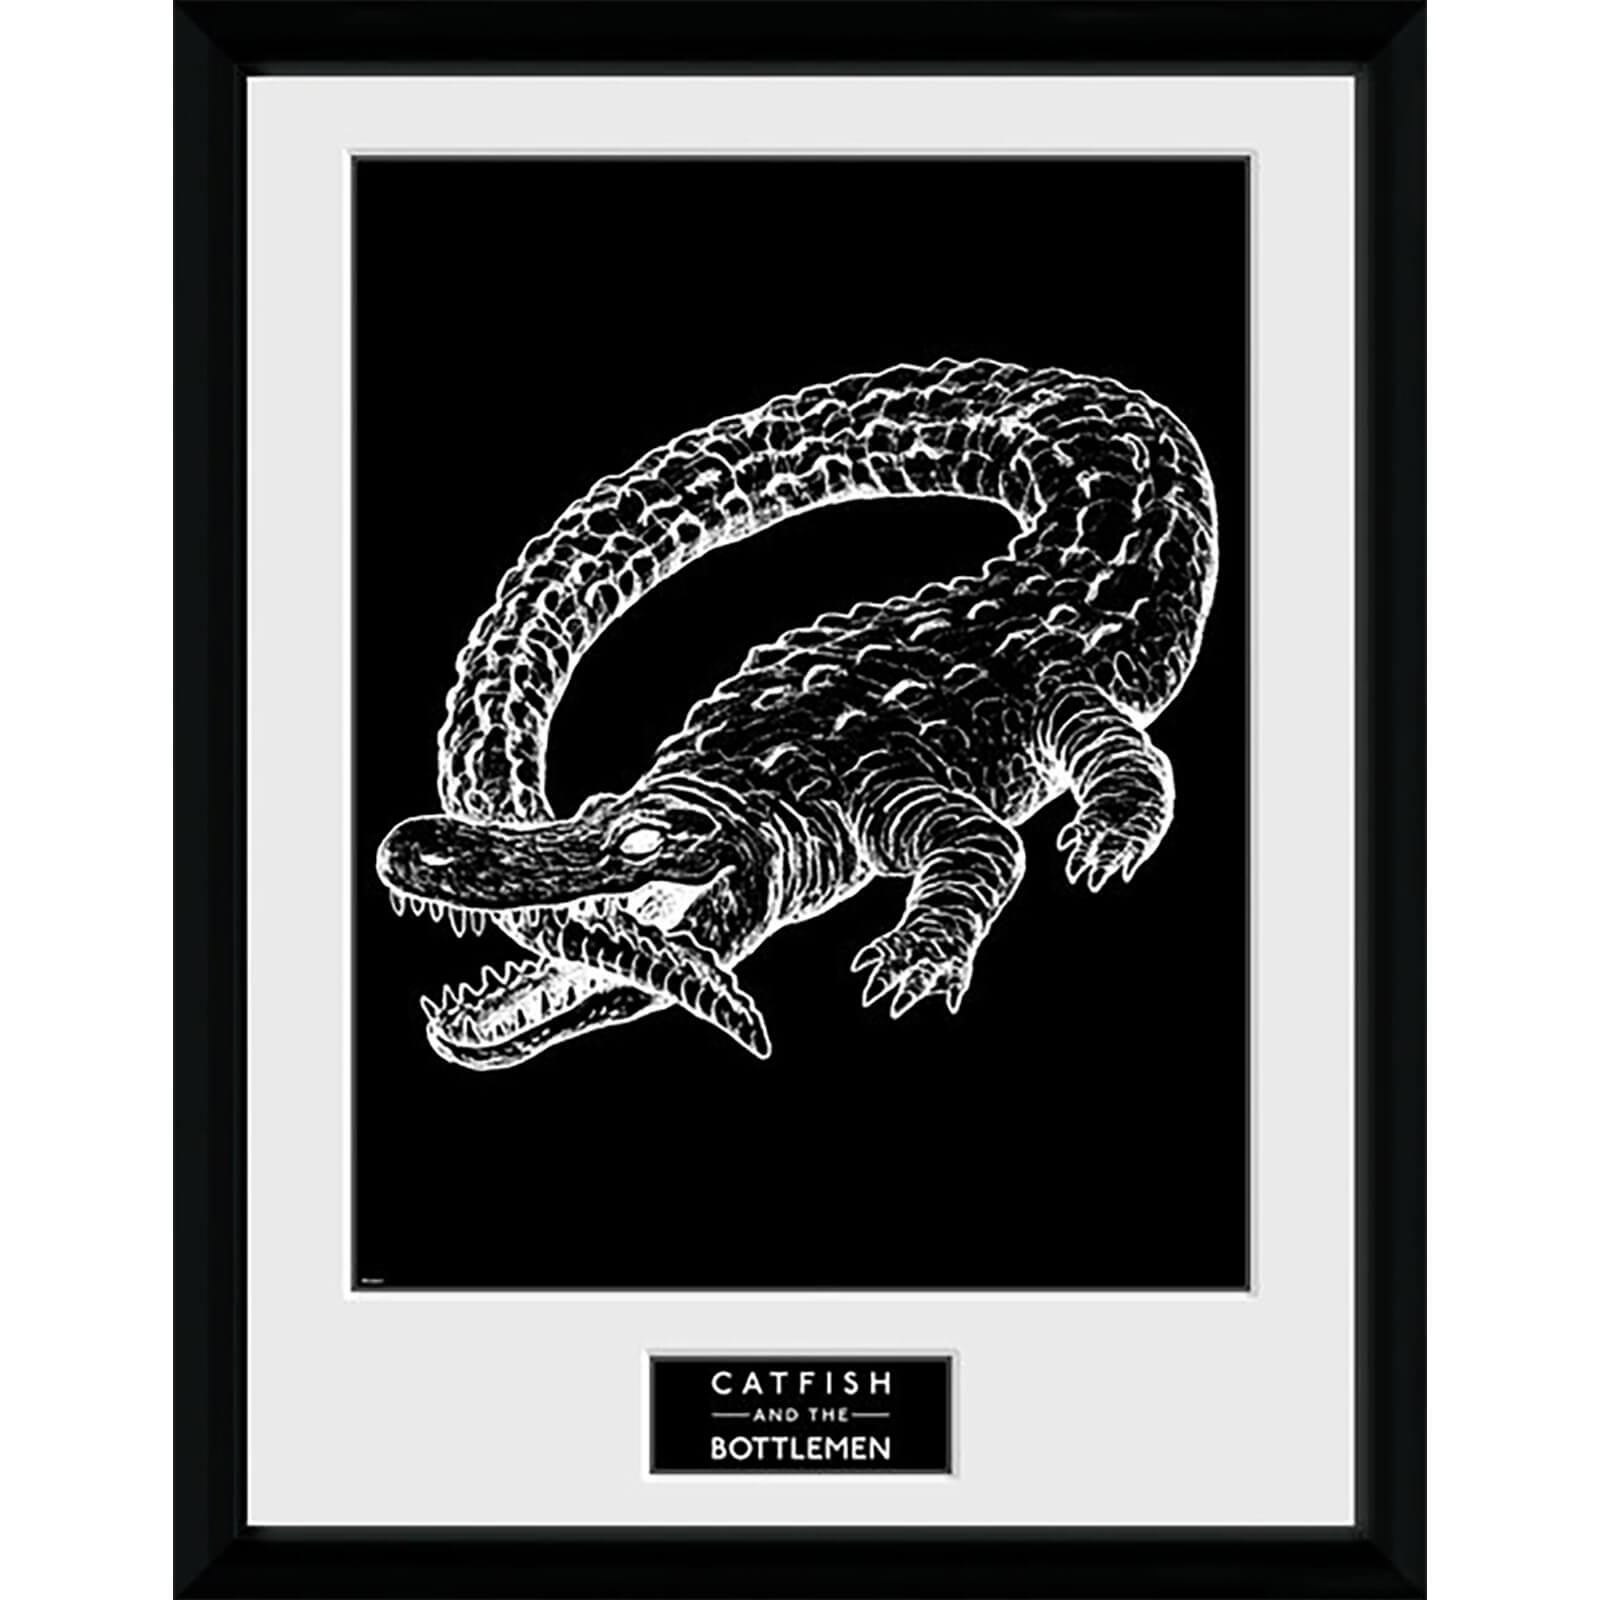 Catfish and the Bottlemen Alligator - 16 x 12 Inches Framed Photograph